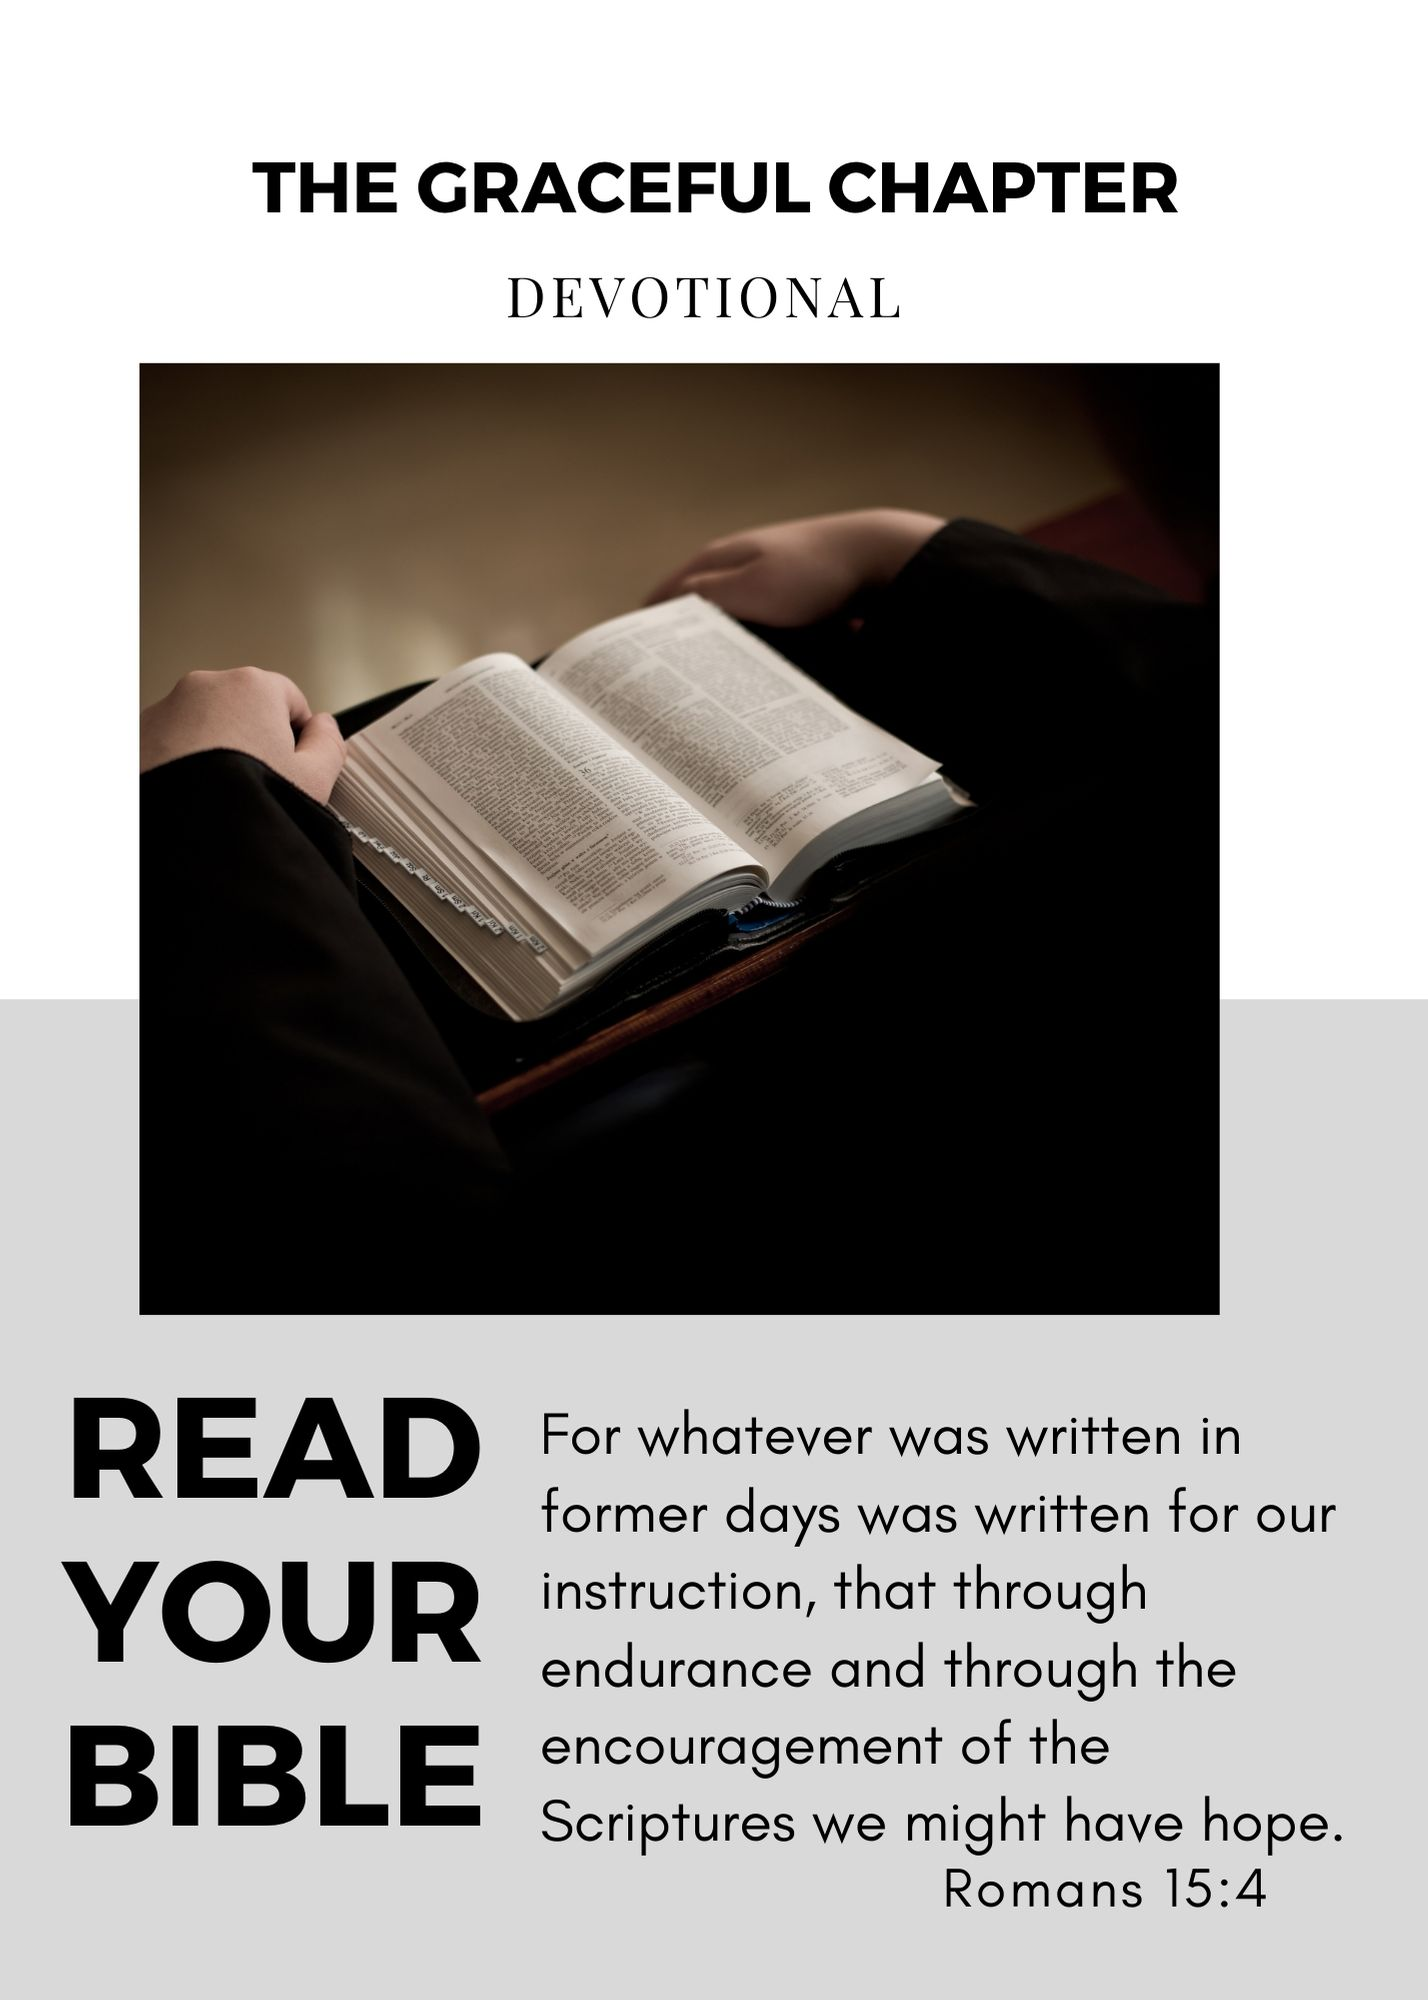 """Read your Bible """"For whatever was written in former days was written for our instruction, that through endurance and through the encouragement of the Scriptures we might have hope. Romans 15:4"""